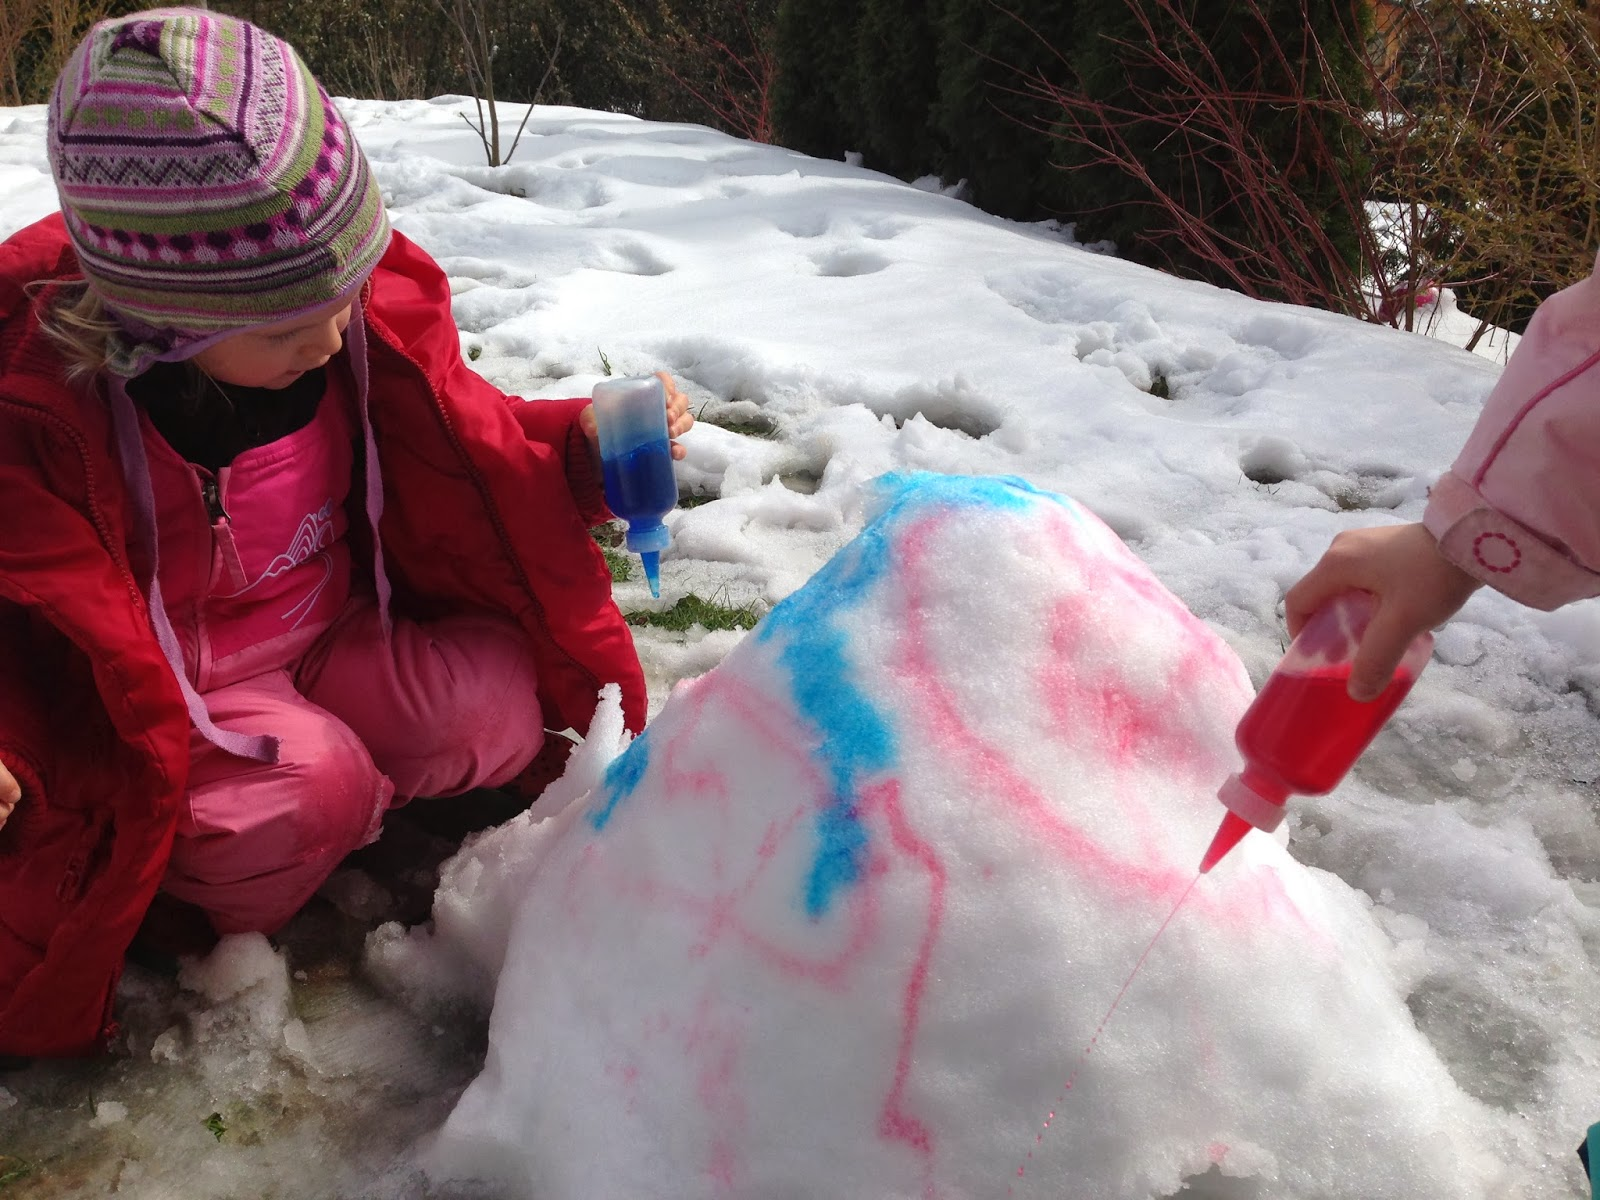 playing in the snow - snow painting